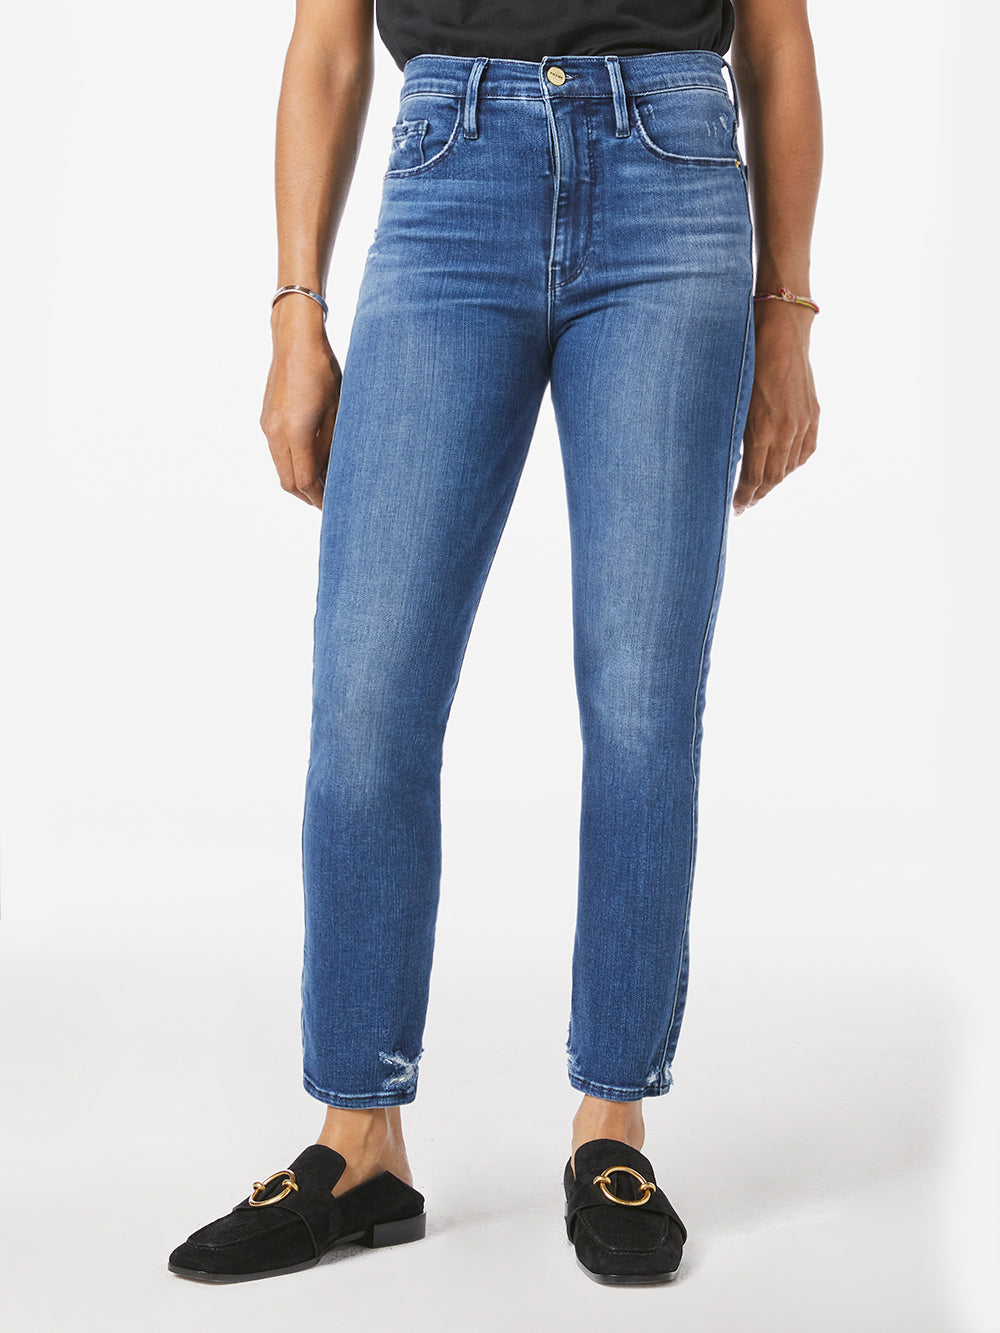 jean front view